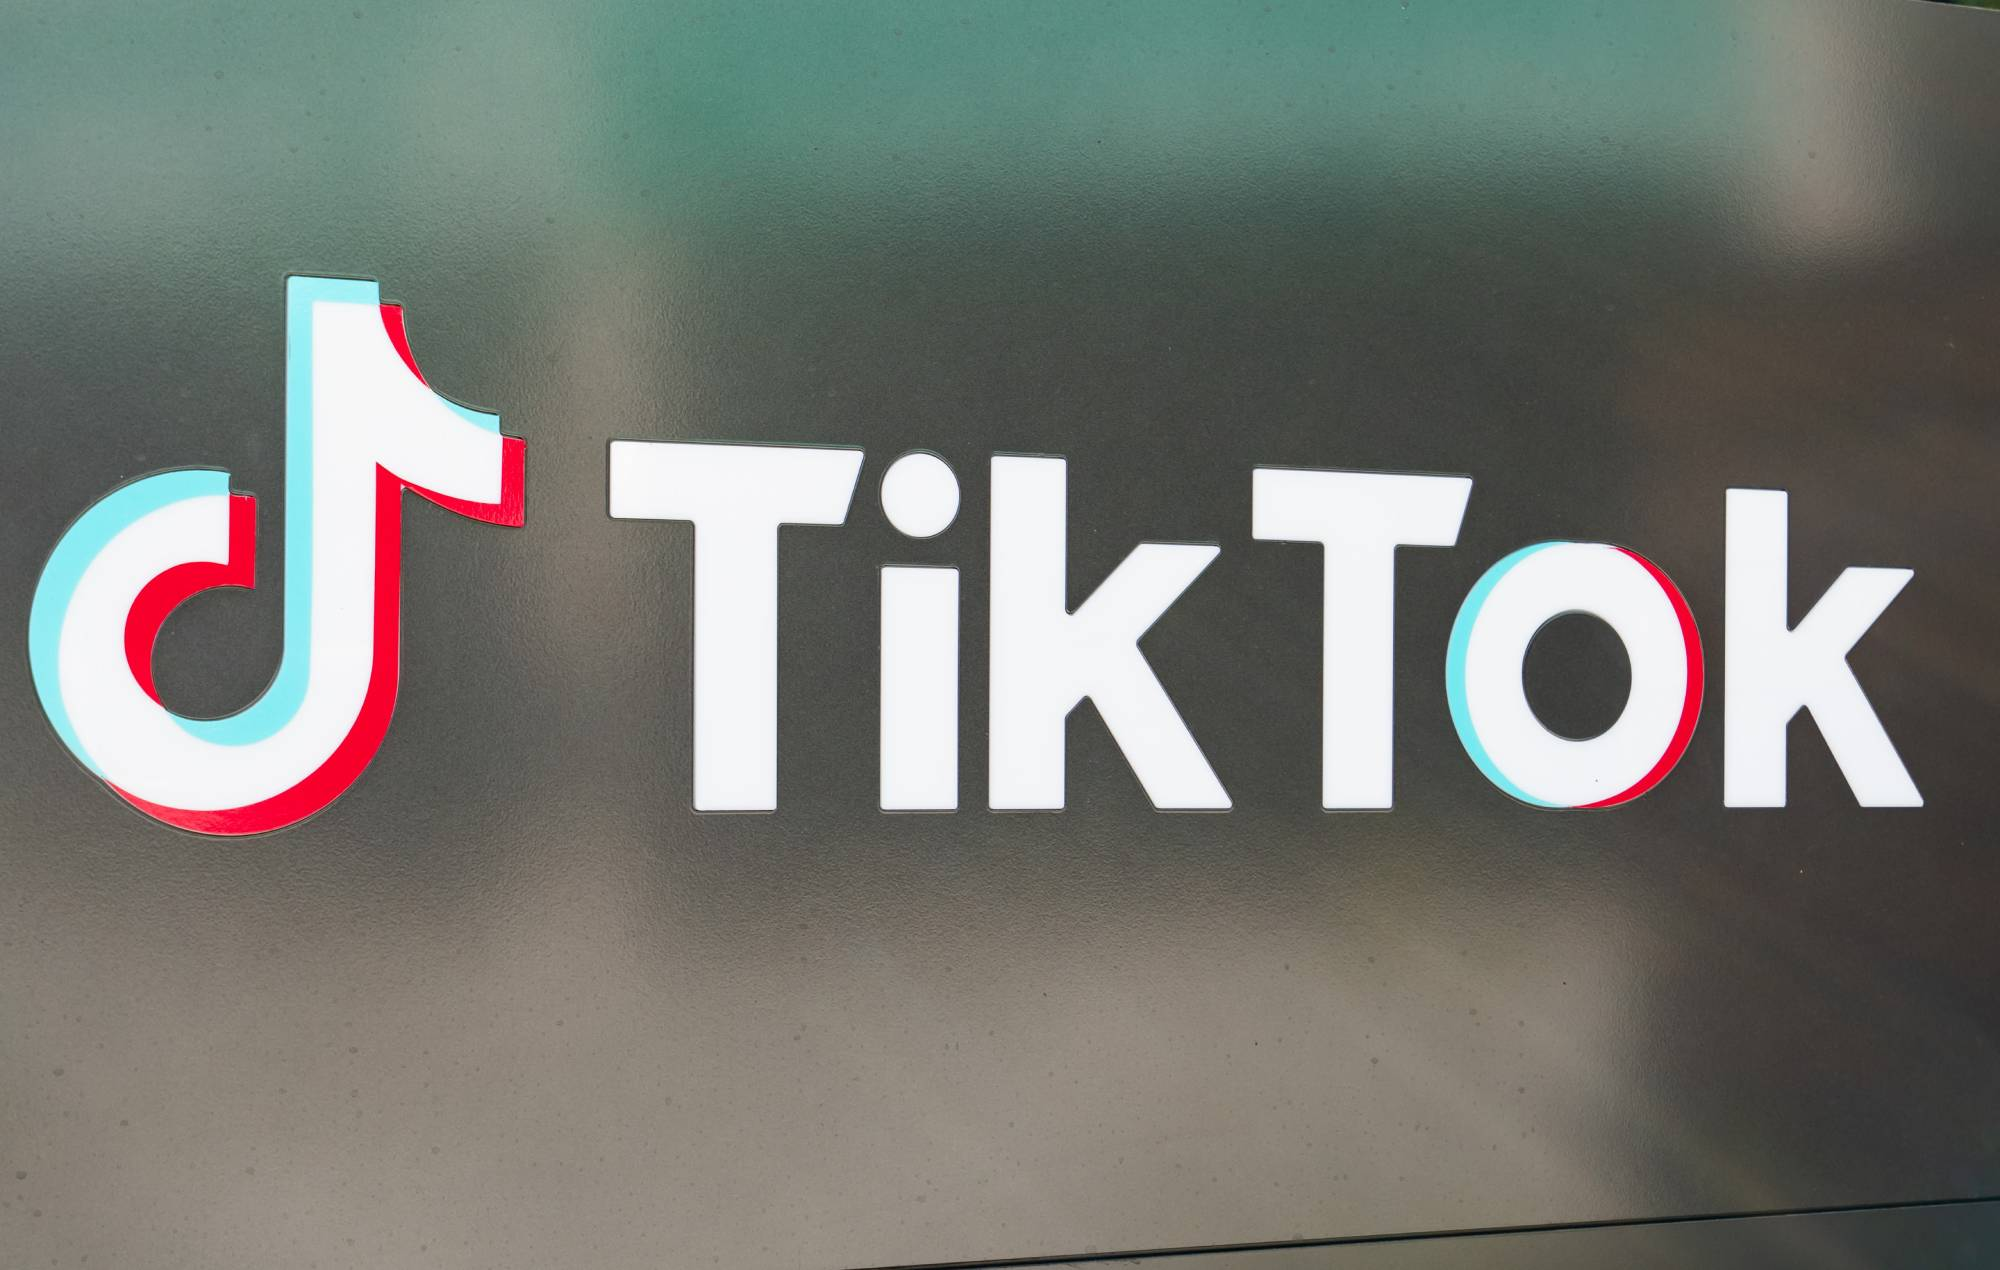 TikTok users watch app for average of 89 minutes per day